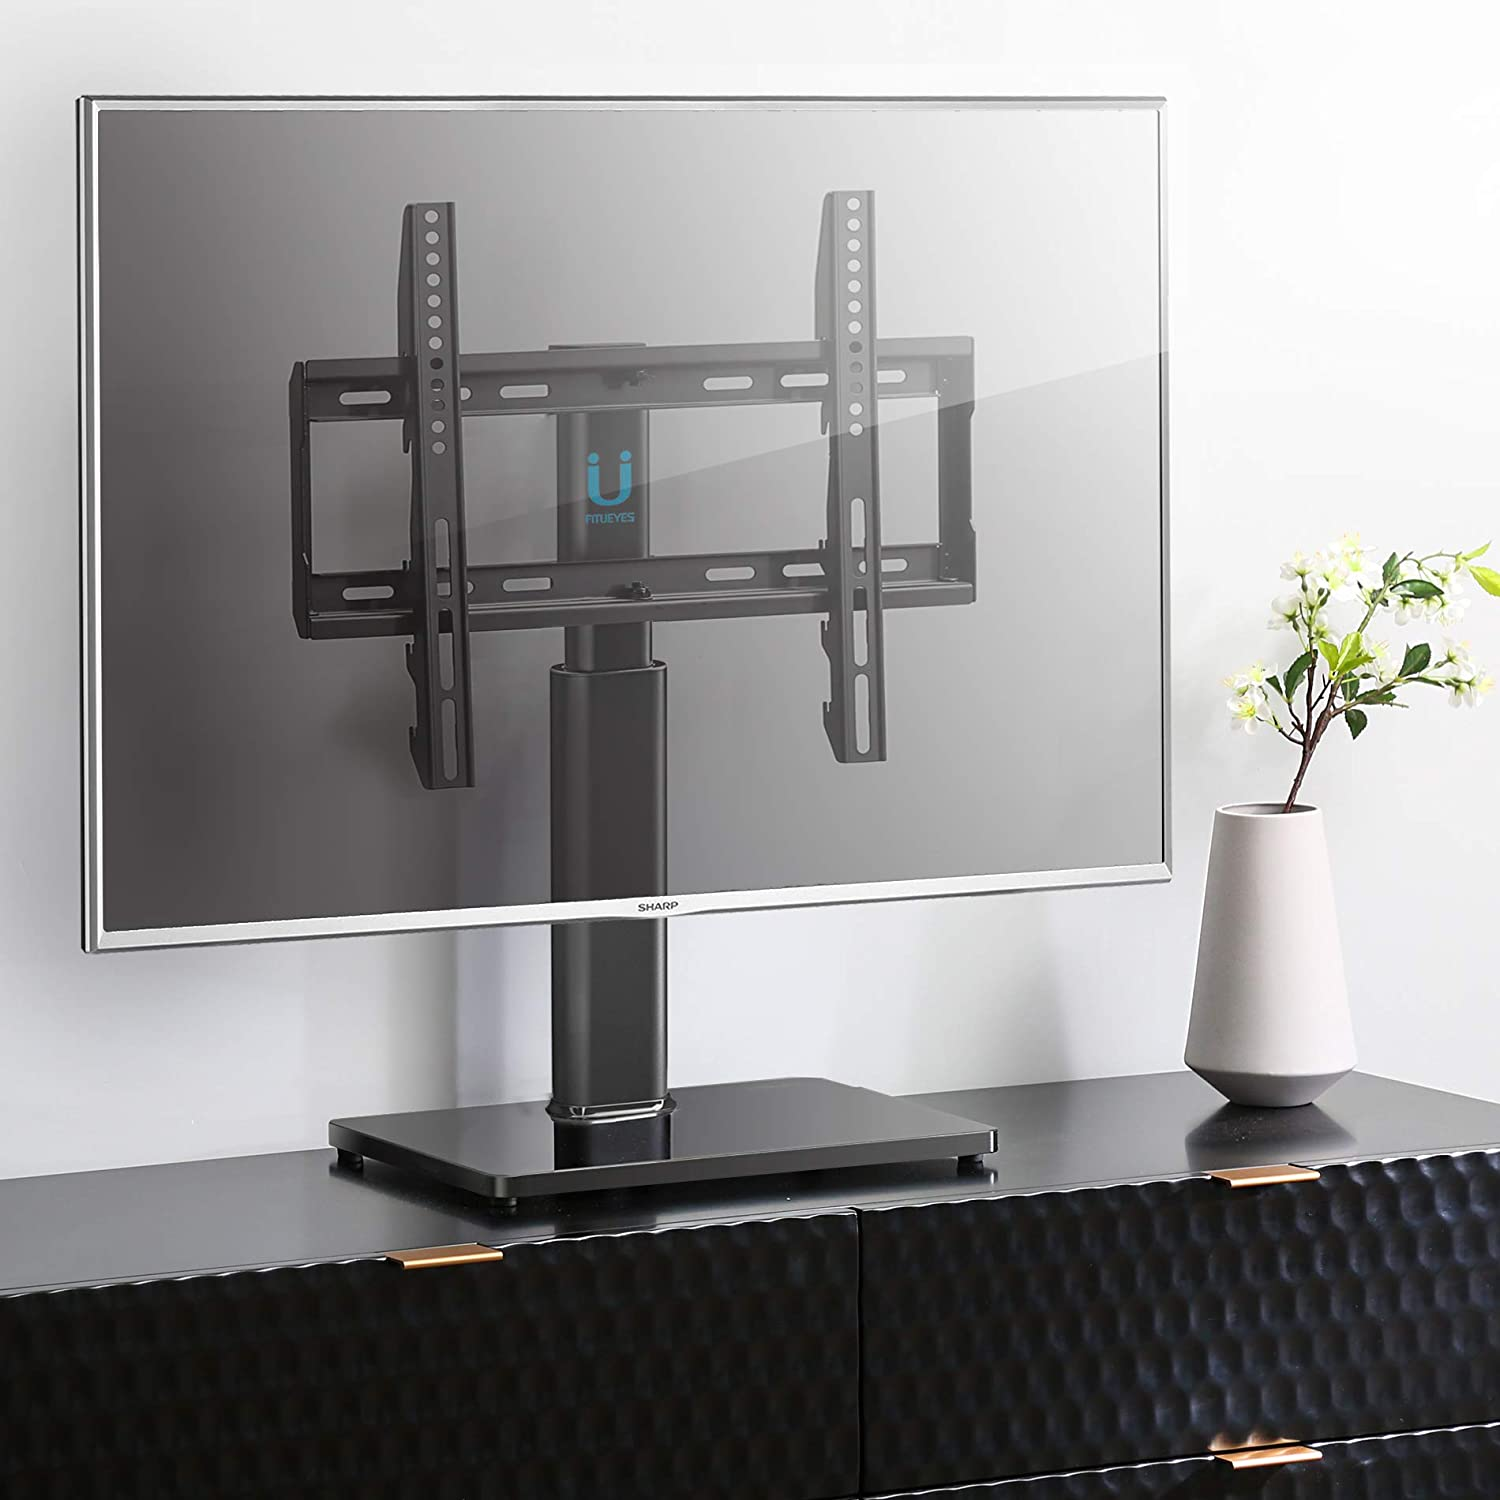 FITUEYES Universal TV Stand Tabletop Base with Swivel Mount for 32 to 60 inch Flat Screen TV 2 Level Height Adjustable Holds up to 110lbs Screens VESA 400x400mm TT104501GB